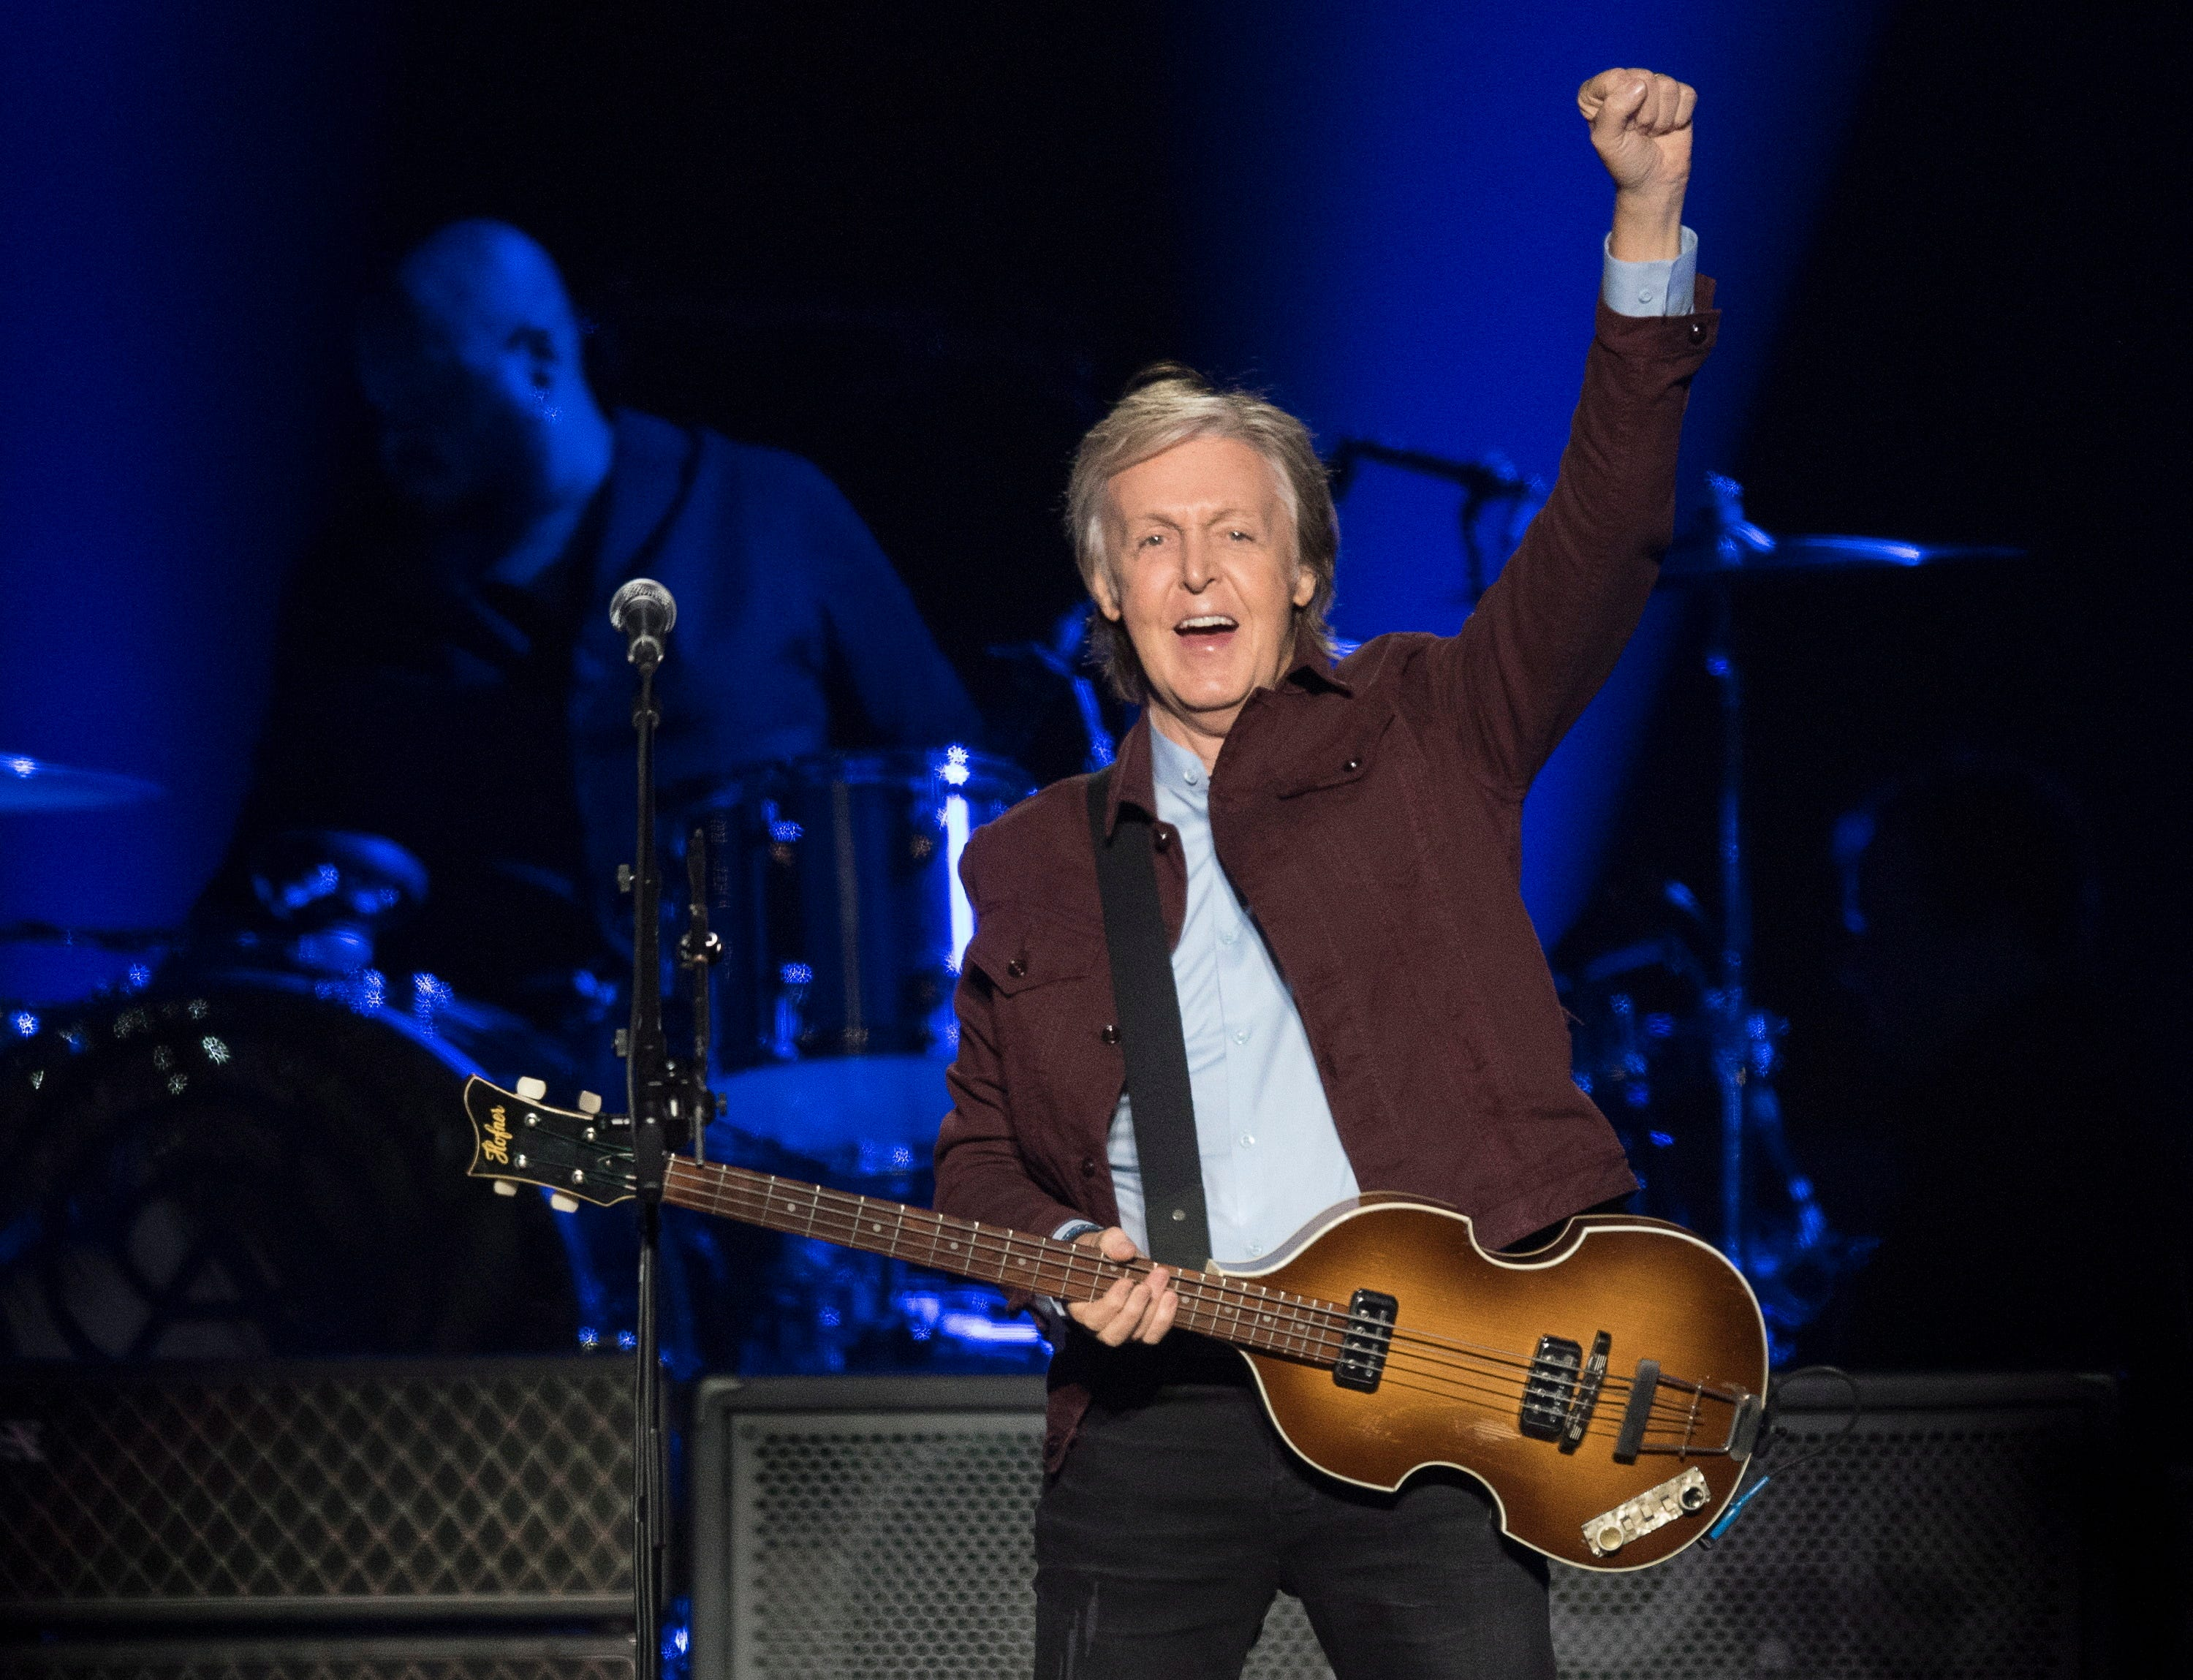 paul mccartney minutes chat lennon complimented me only once